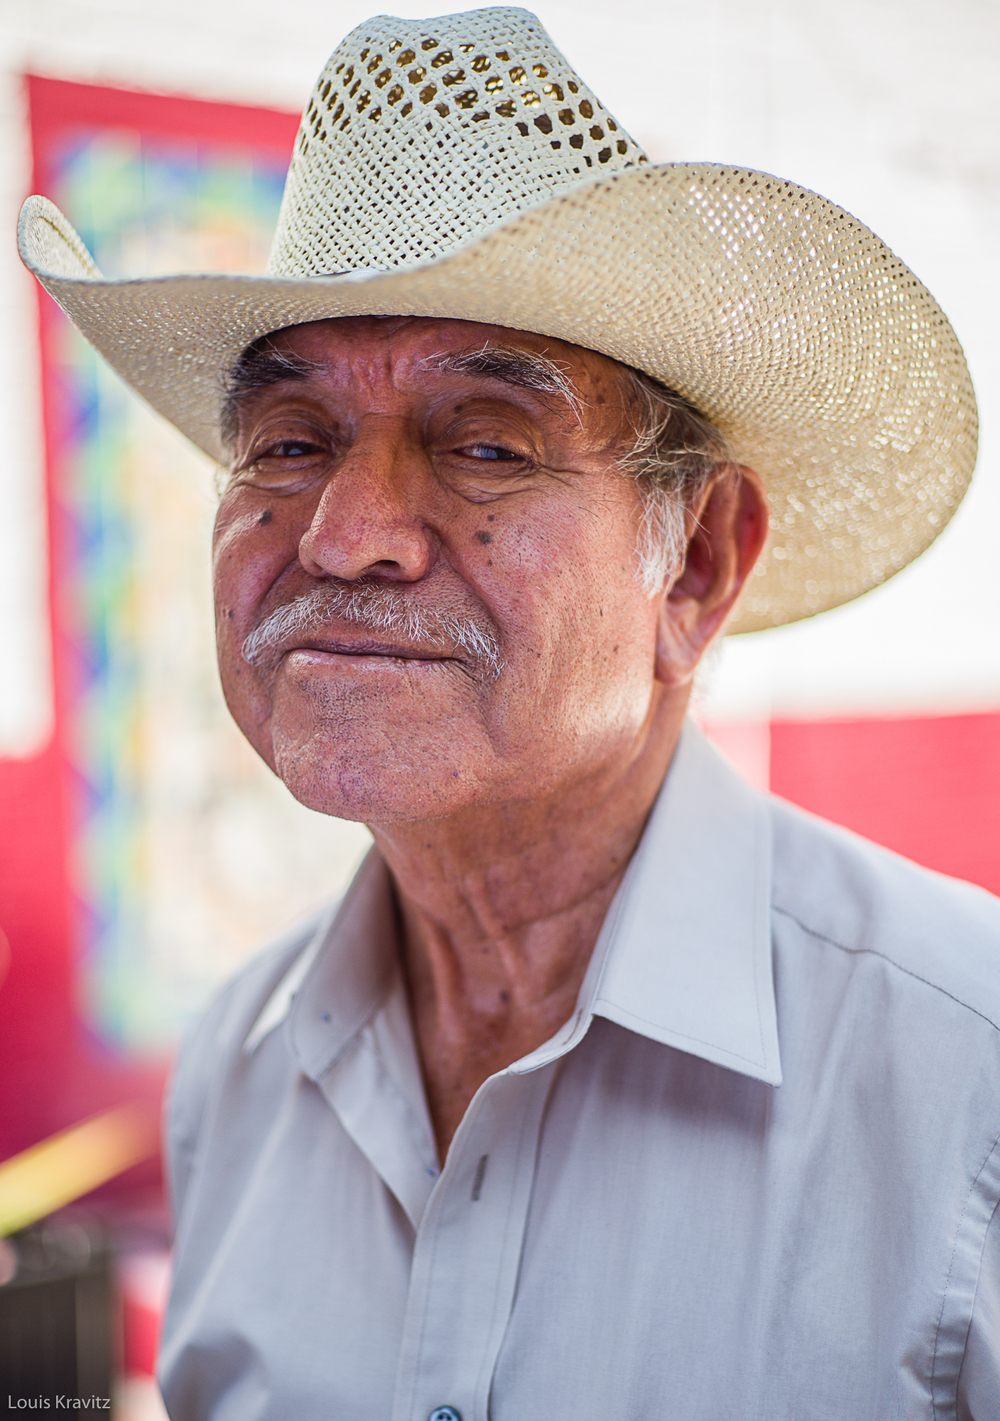 portrait of a senior man in cowboy hat